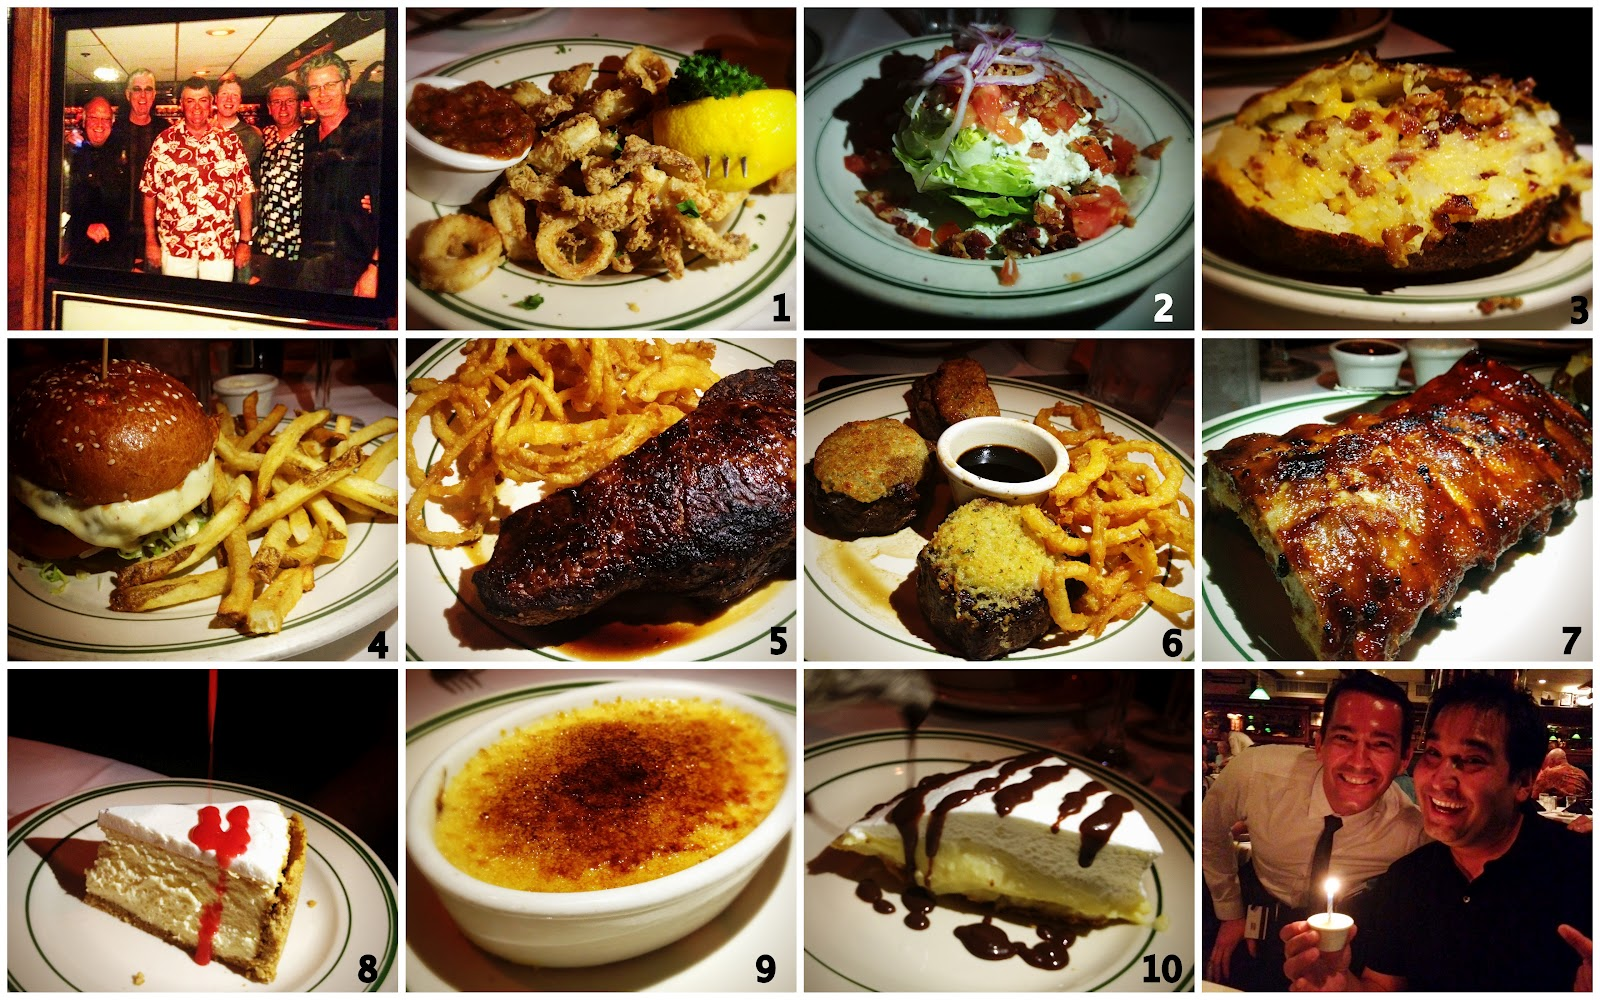 T is for tommy v 39 s scottsdale food finds restaurant for American traditional cuisine